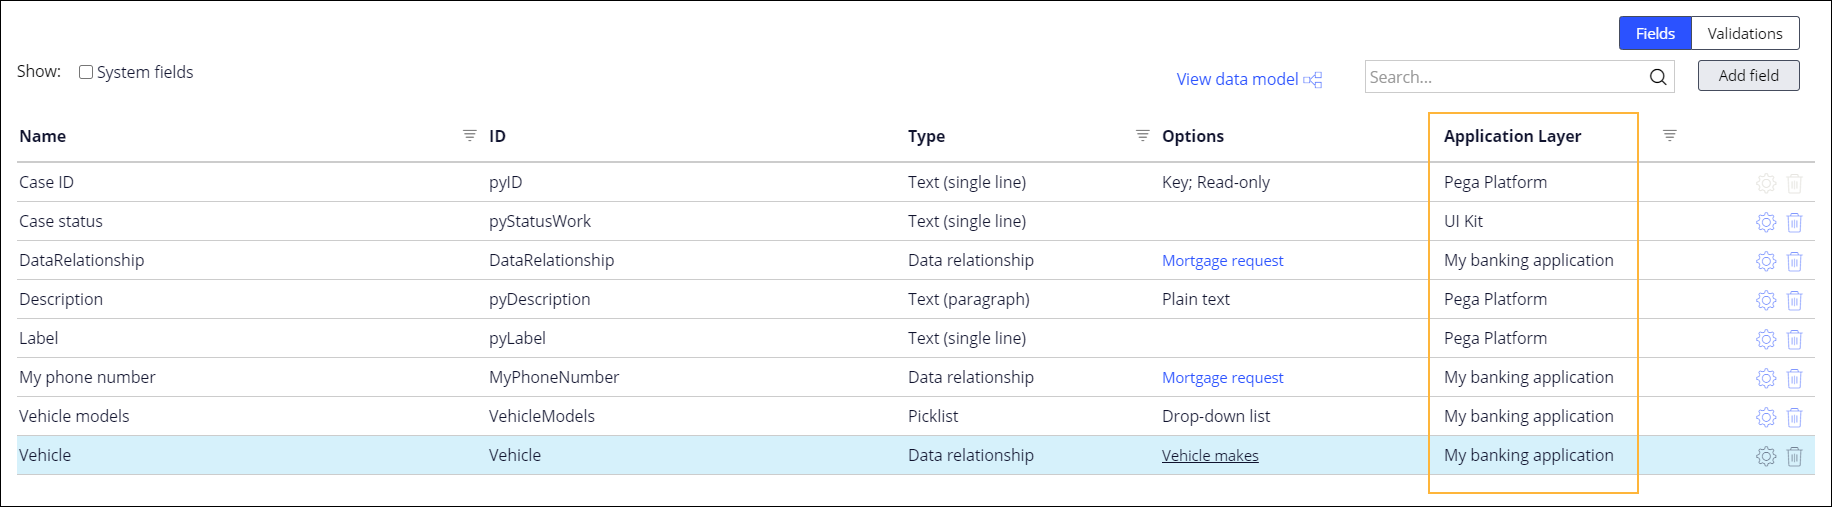 A list of data objects with a specified application layer